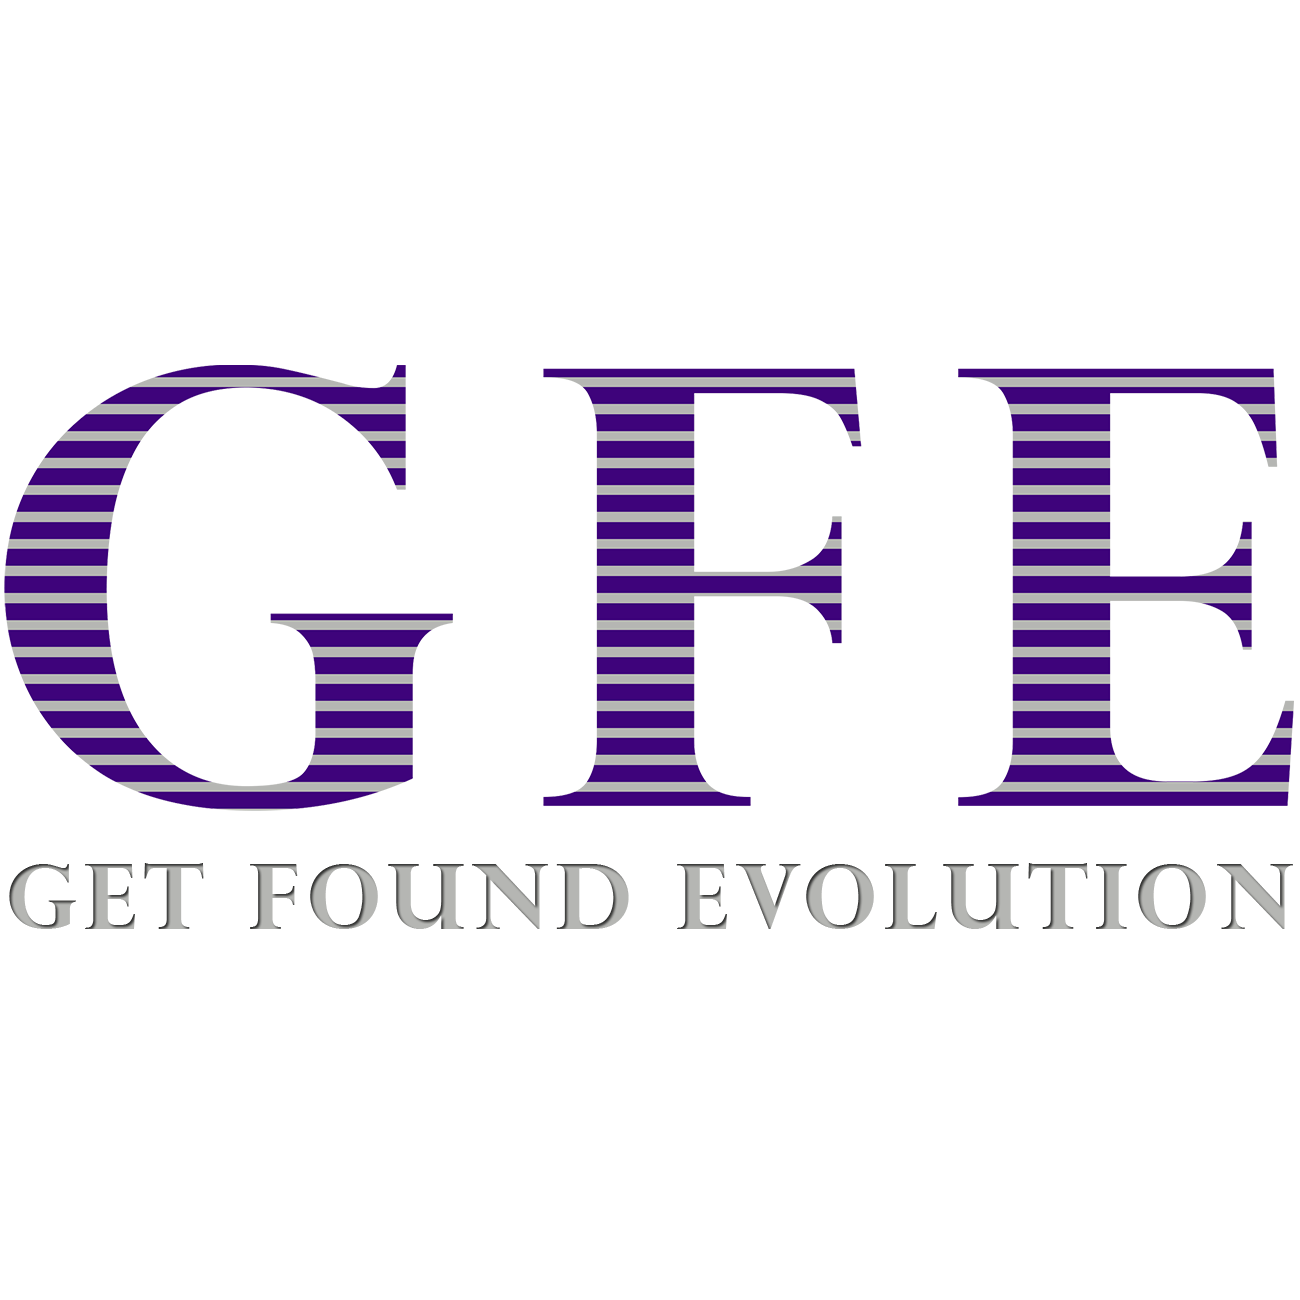 Get Found Evolution